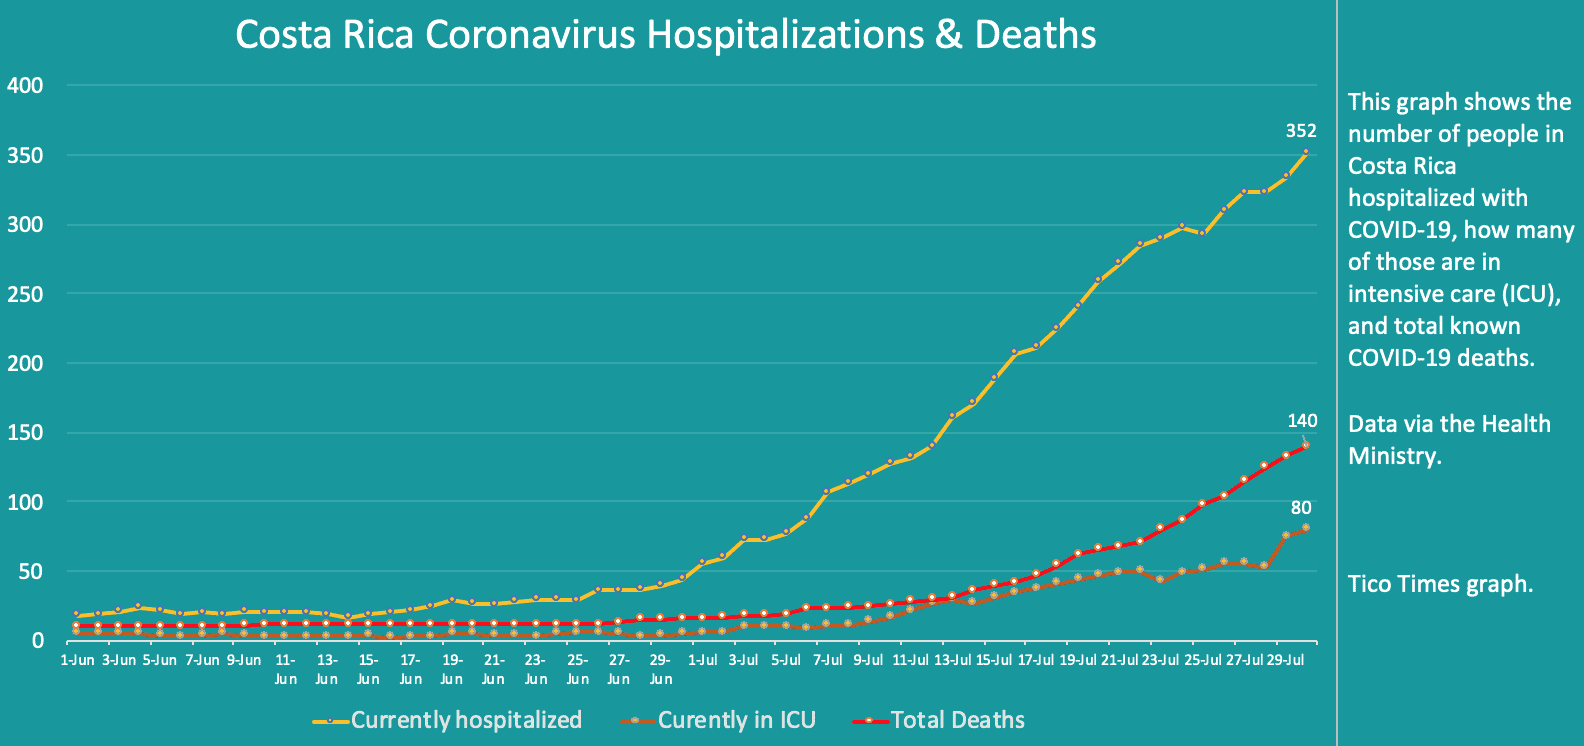 Costa Rica coronavirus hospitalizations and deaths on July 30, 2020